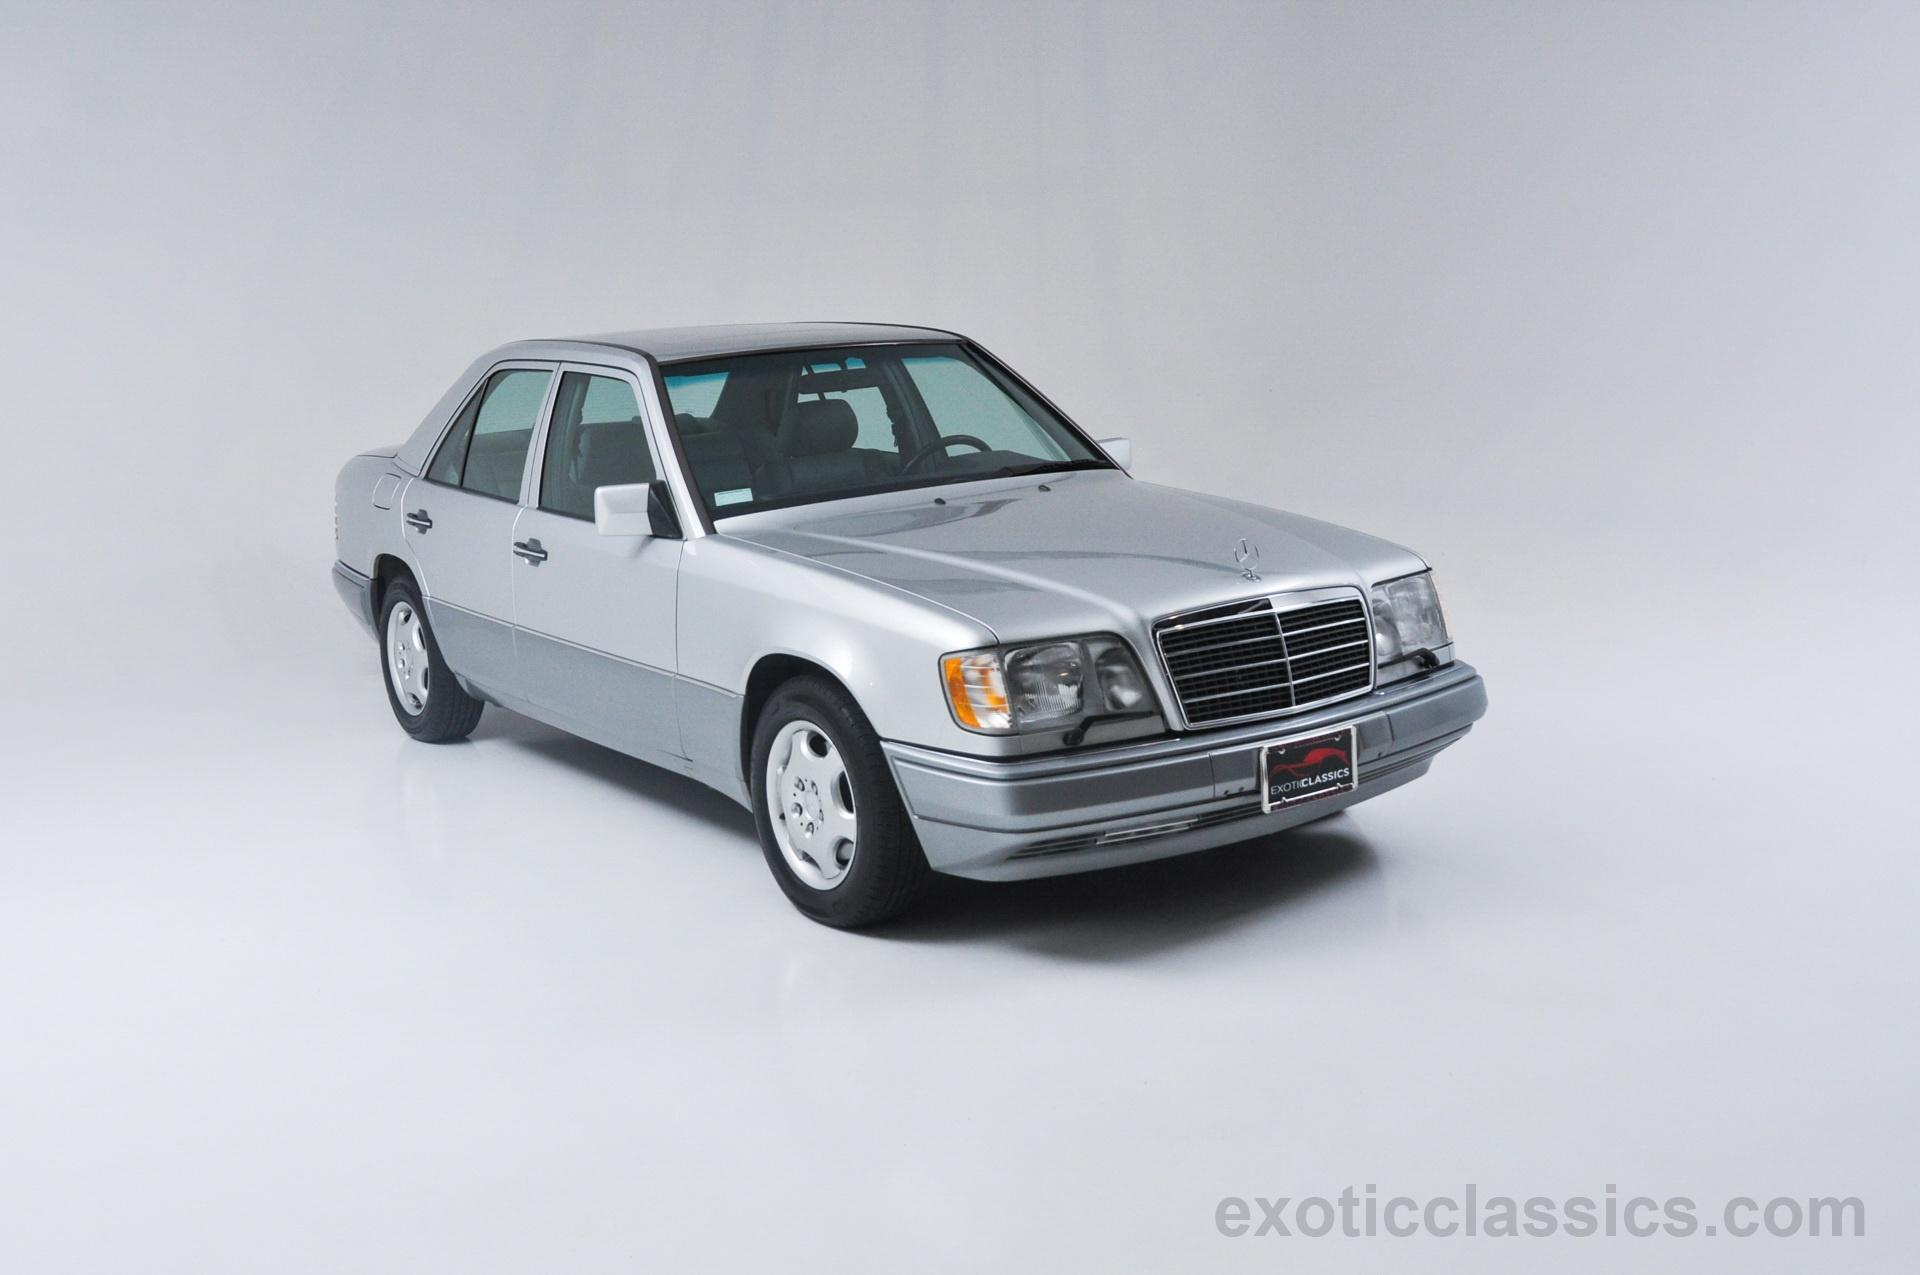 1995 mercedes benz e420 gas mileage. Black Bedroom Furniture Sets. Home Design Ideas